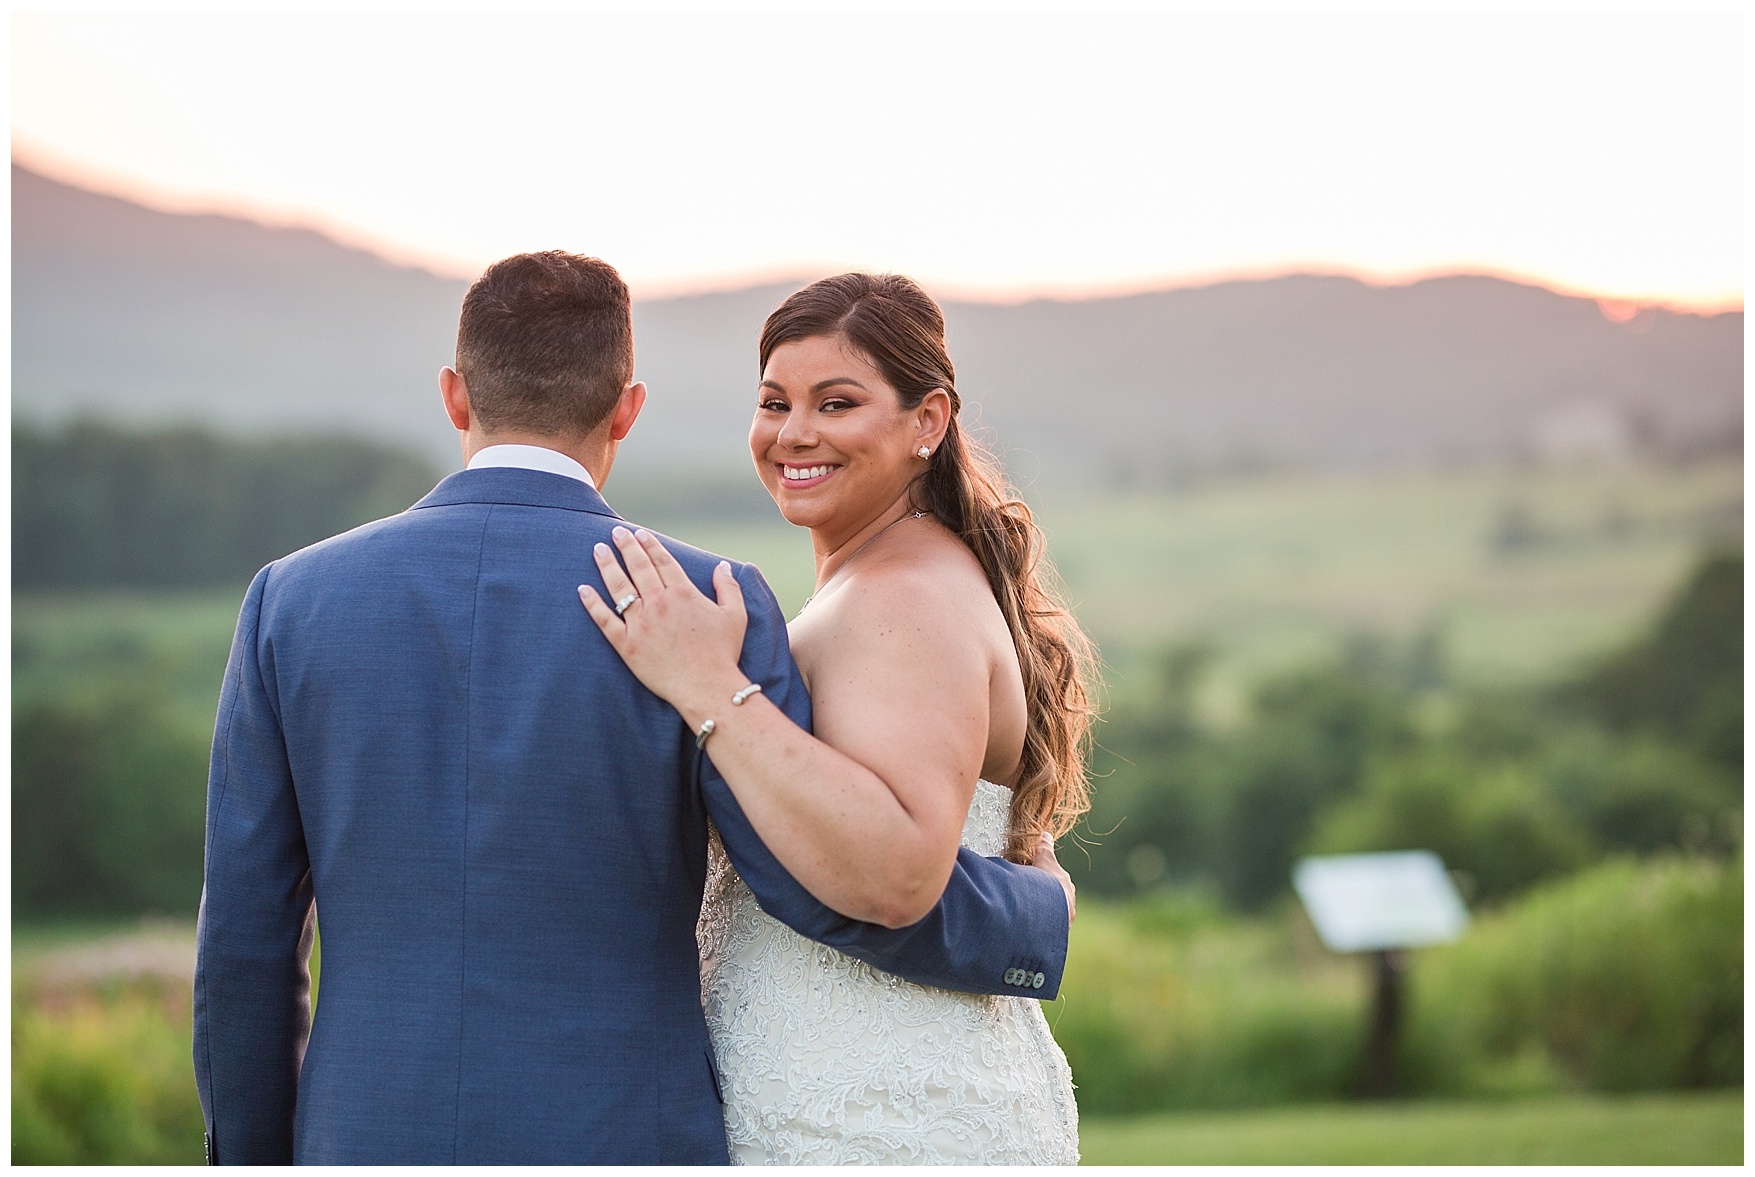 Pippin Hill Farm & Vineyard Wedding in Charlottesville, Virginia || Lynchburg and Charlottesville Wedding Photographer || Summer vineyard wedding in Central Virginia